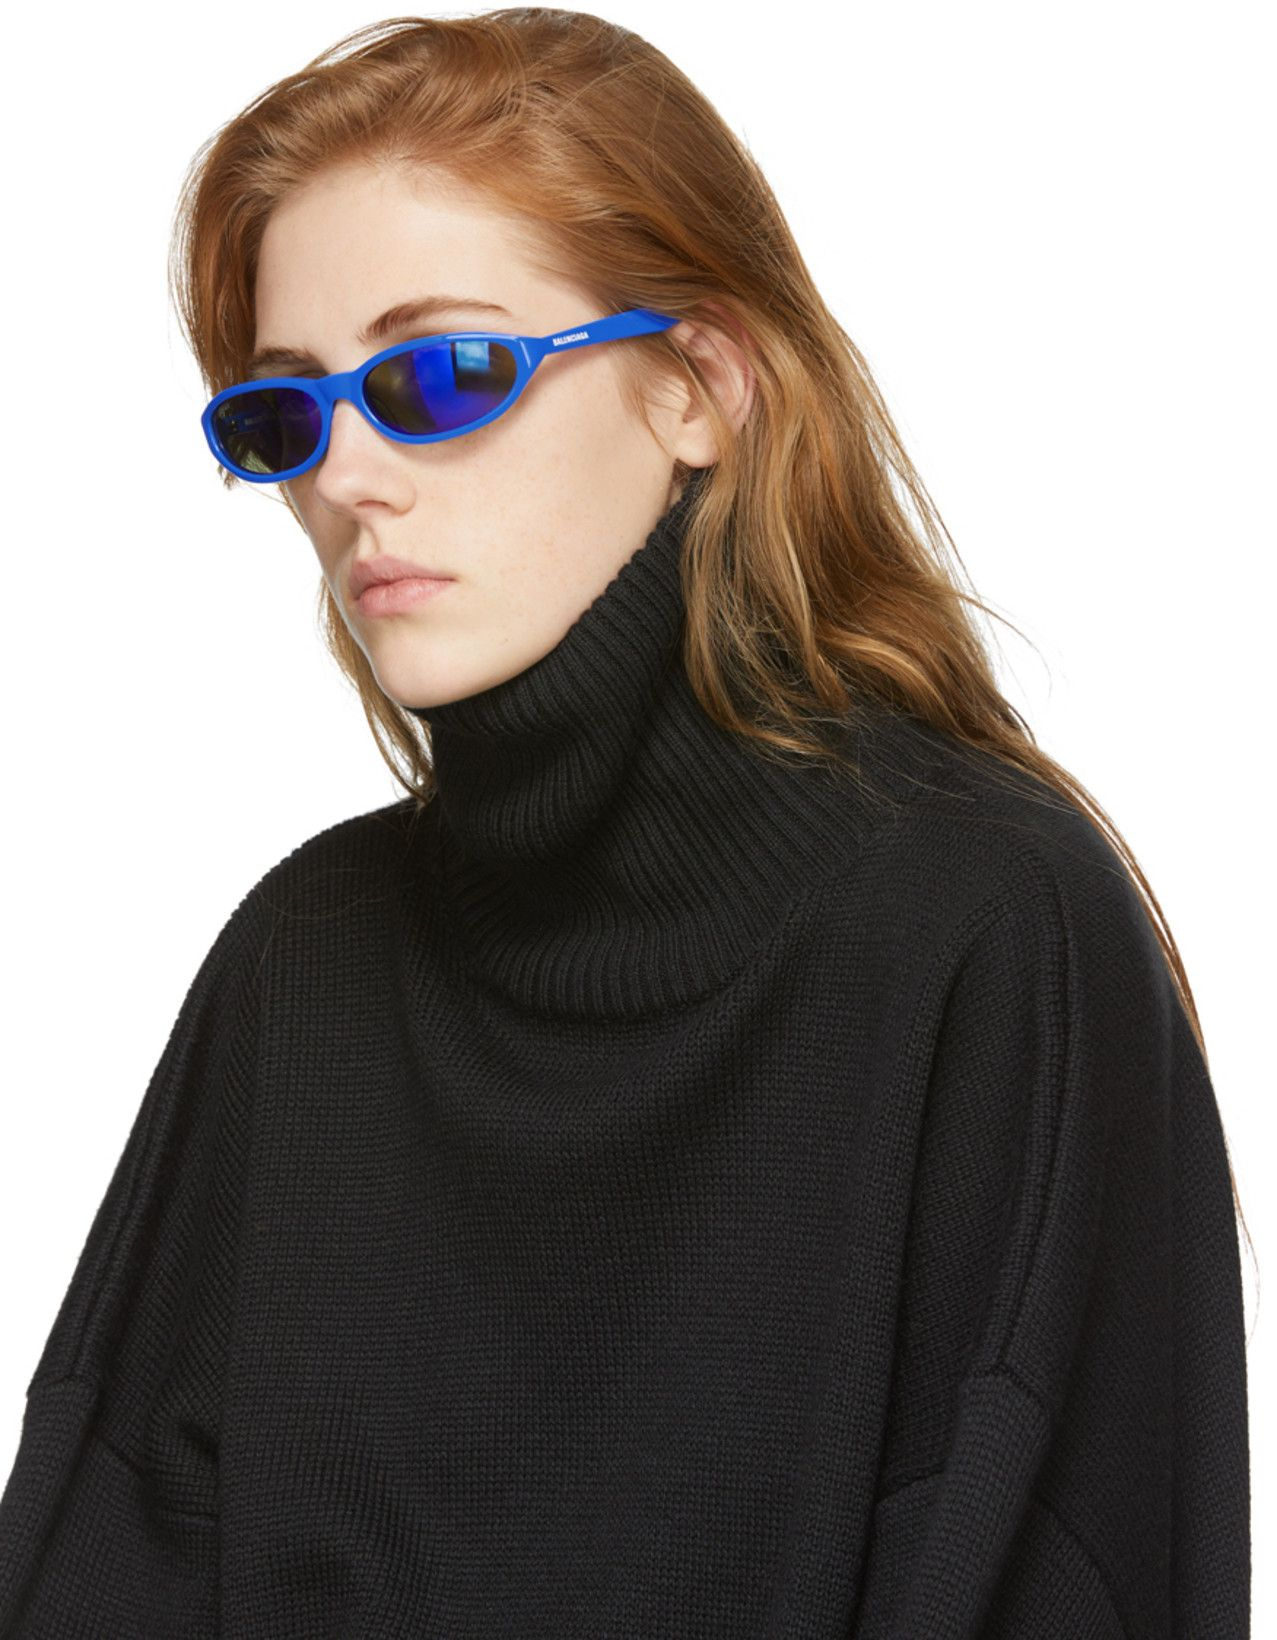 bbd70397cc Balenciaga Blue Neo Sunglasses in 2019